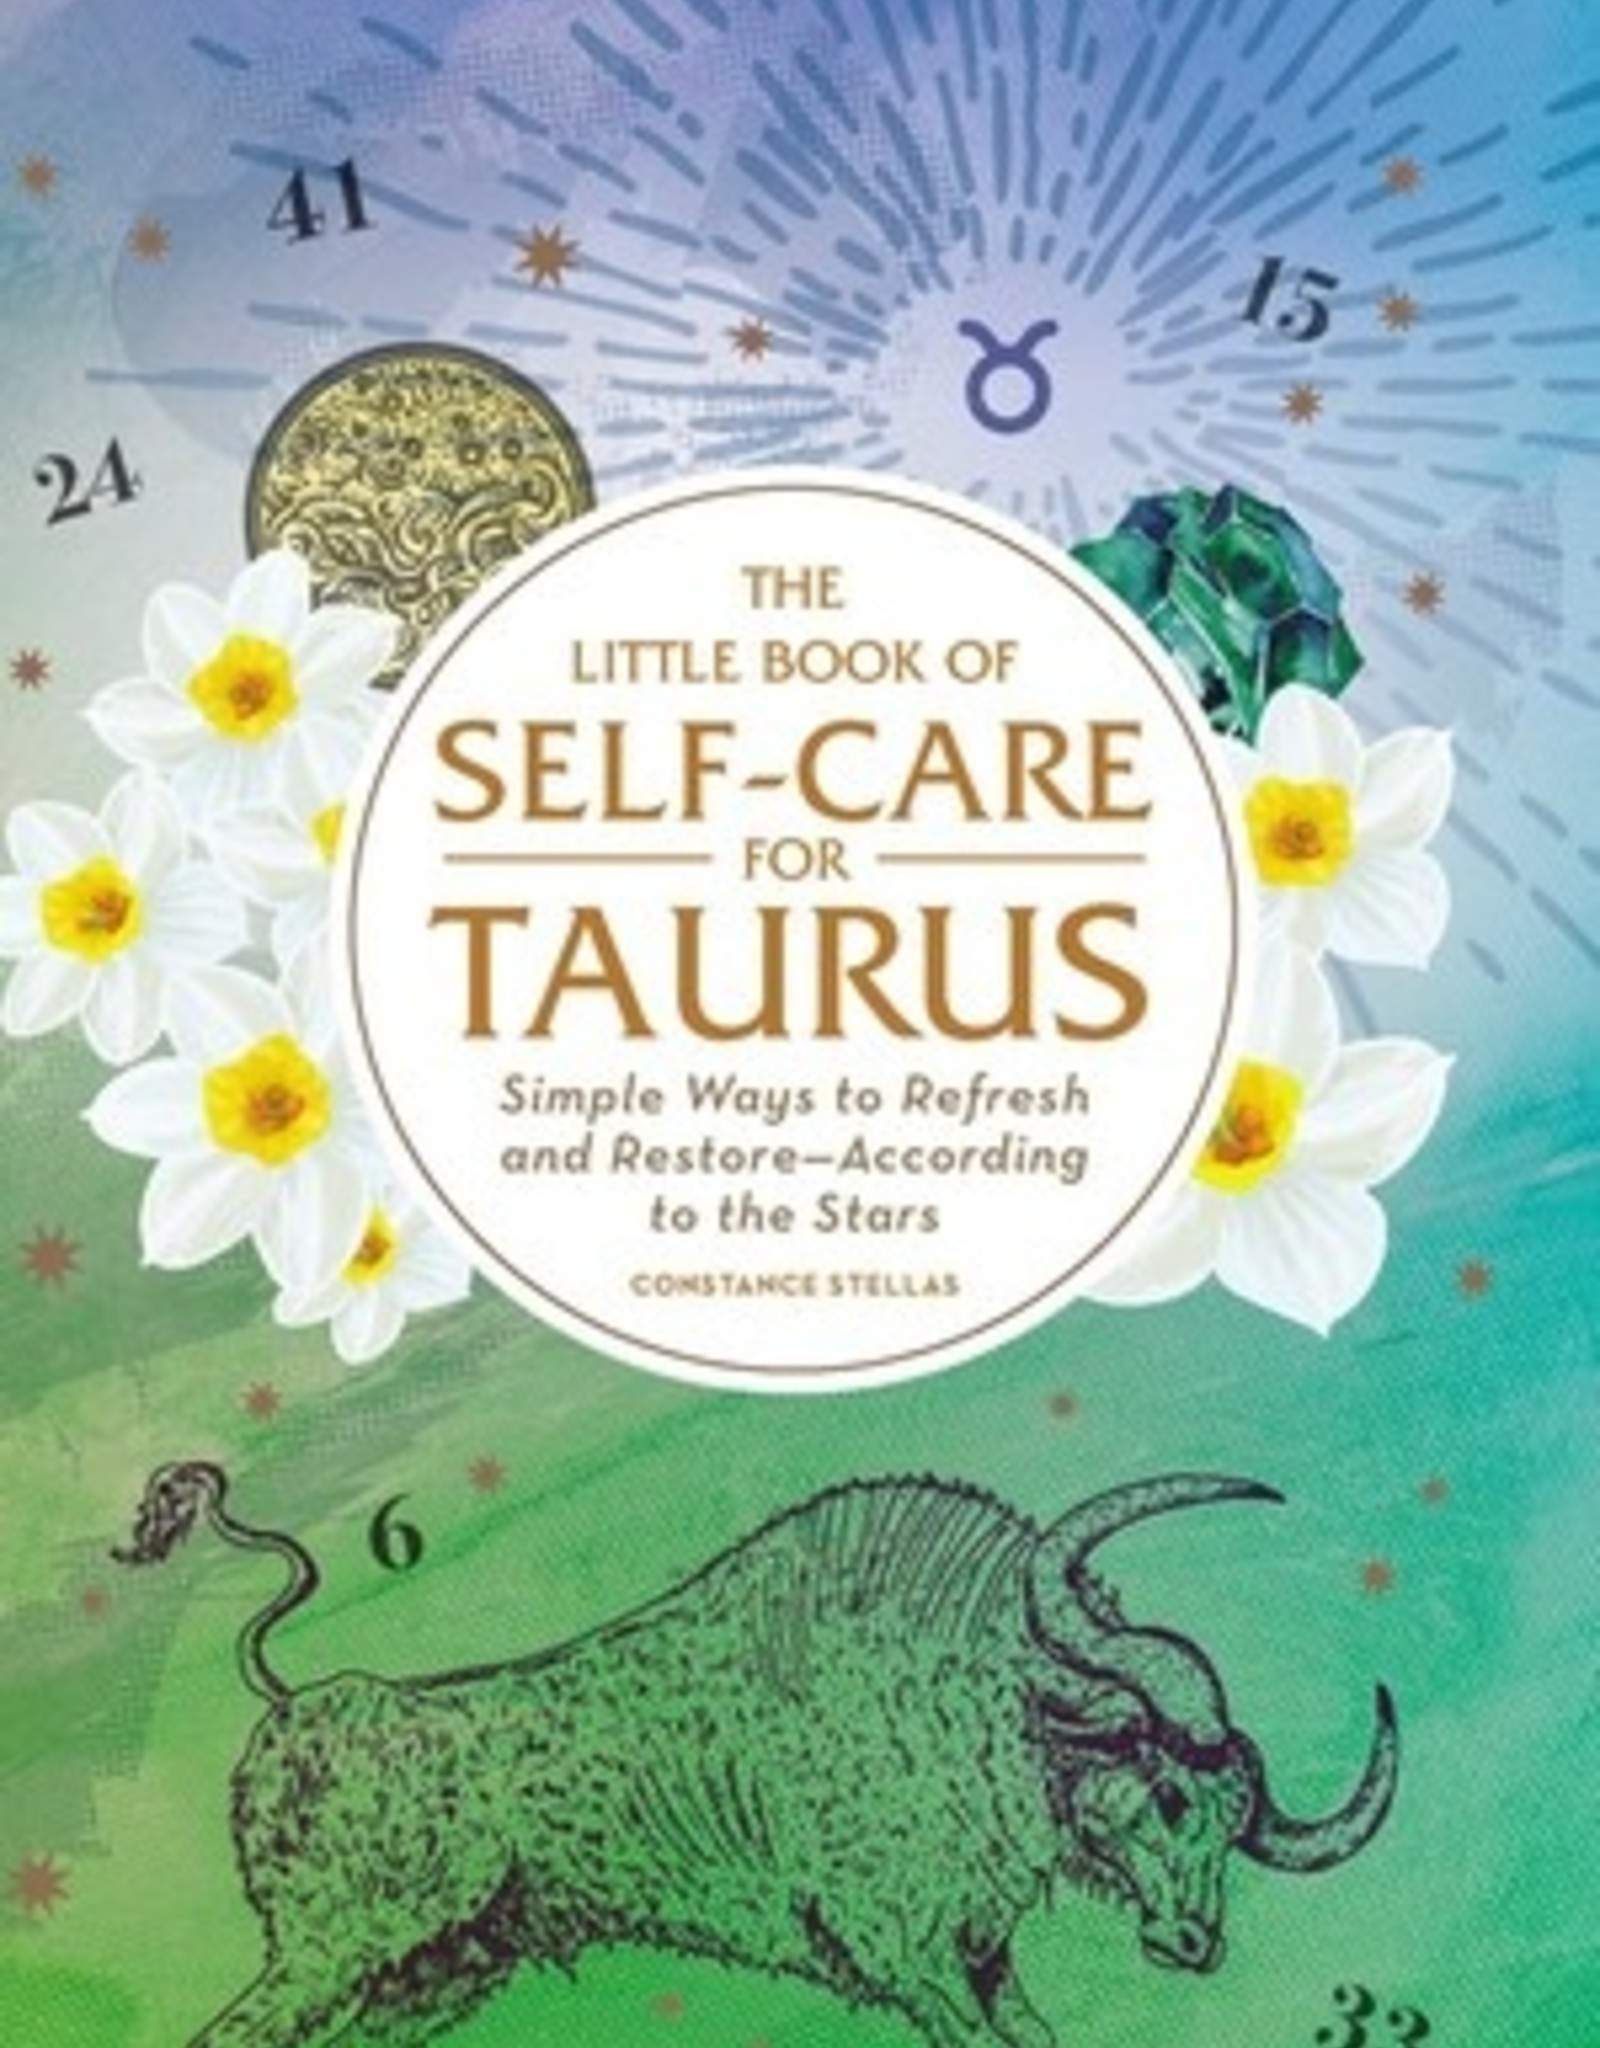 Simon & Schuster The Little Book of Self-Care for Taurus